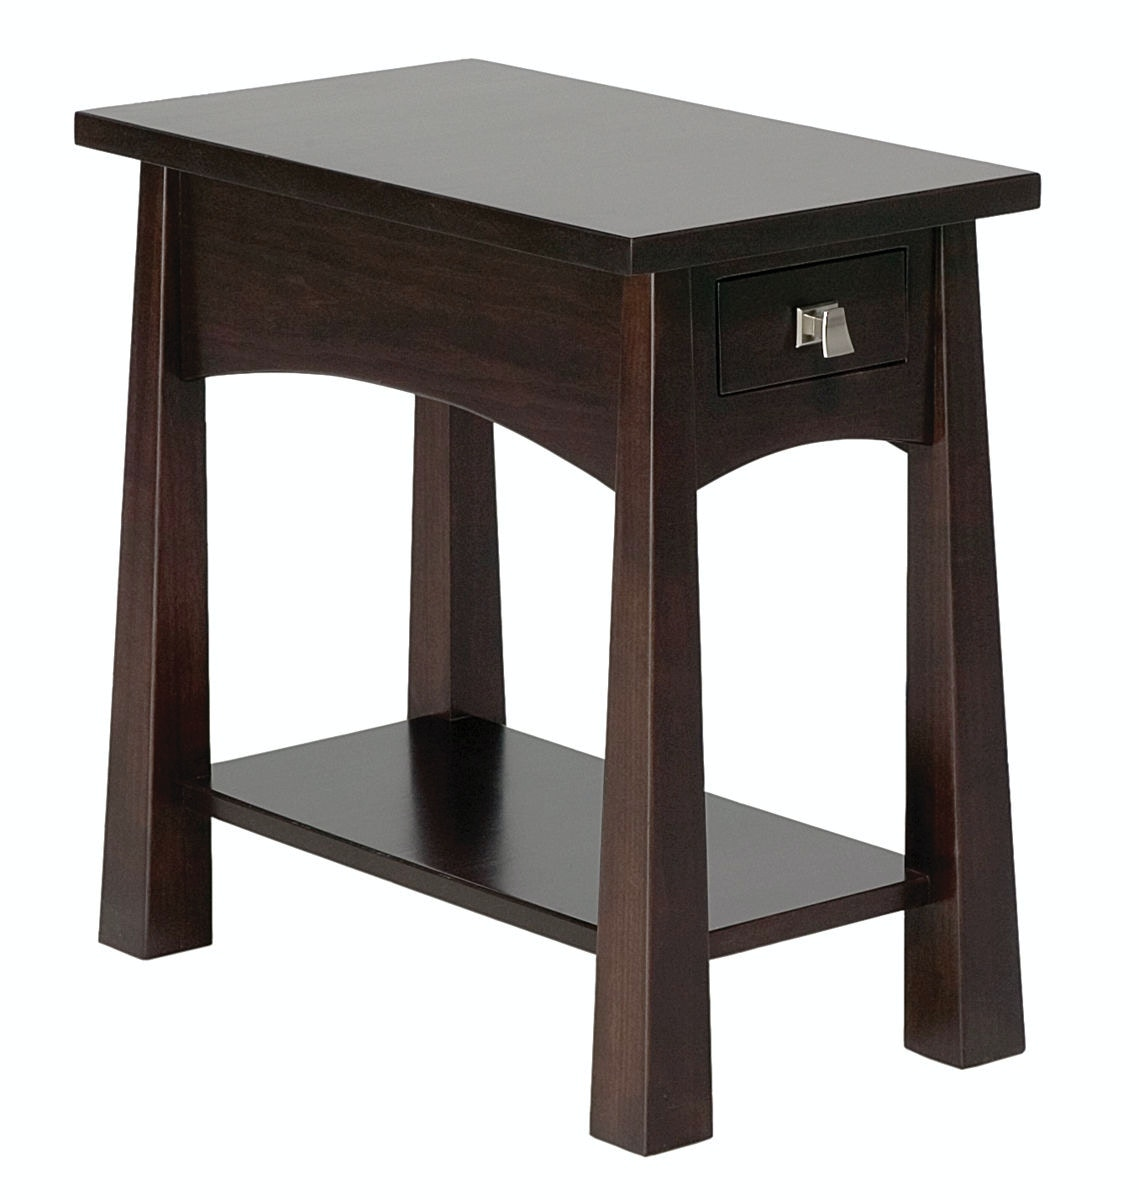 Elegant Precision Crafted Flush Narrow 1 Drawer End Table PC4122